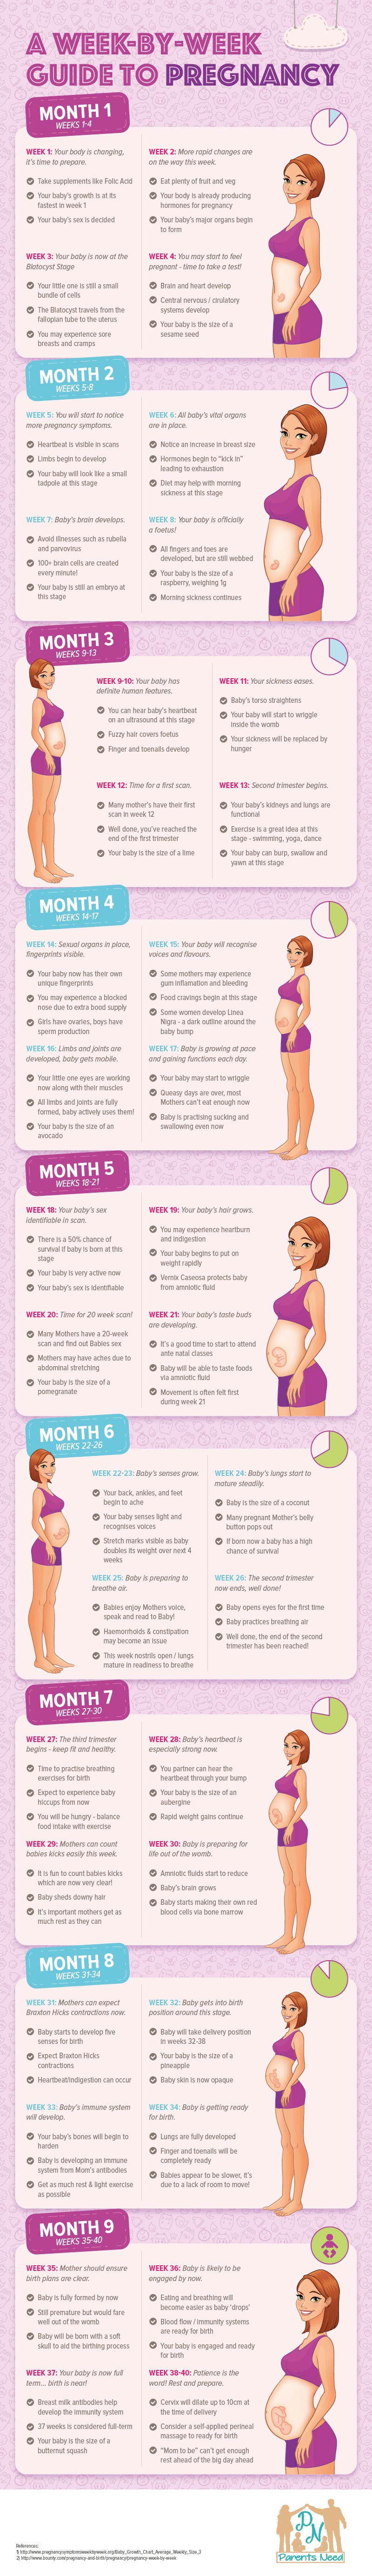 parentsneed-a-week-by-week-guide-to-pregnancy-infographic